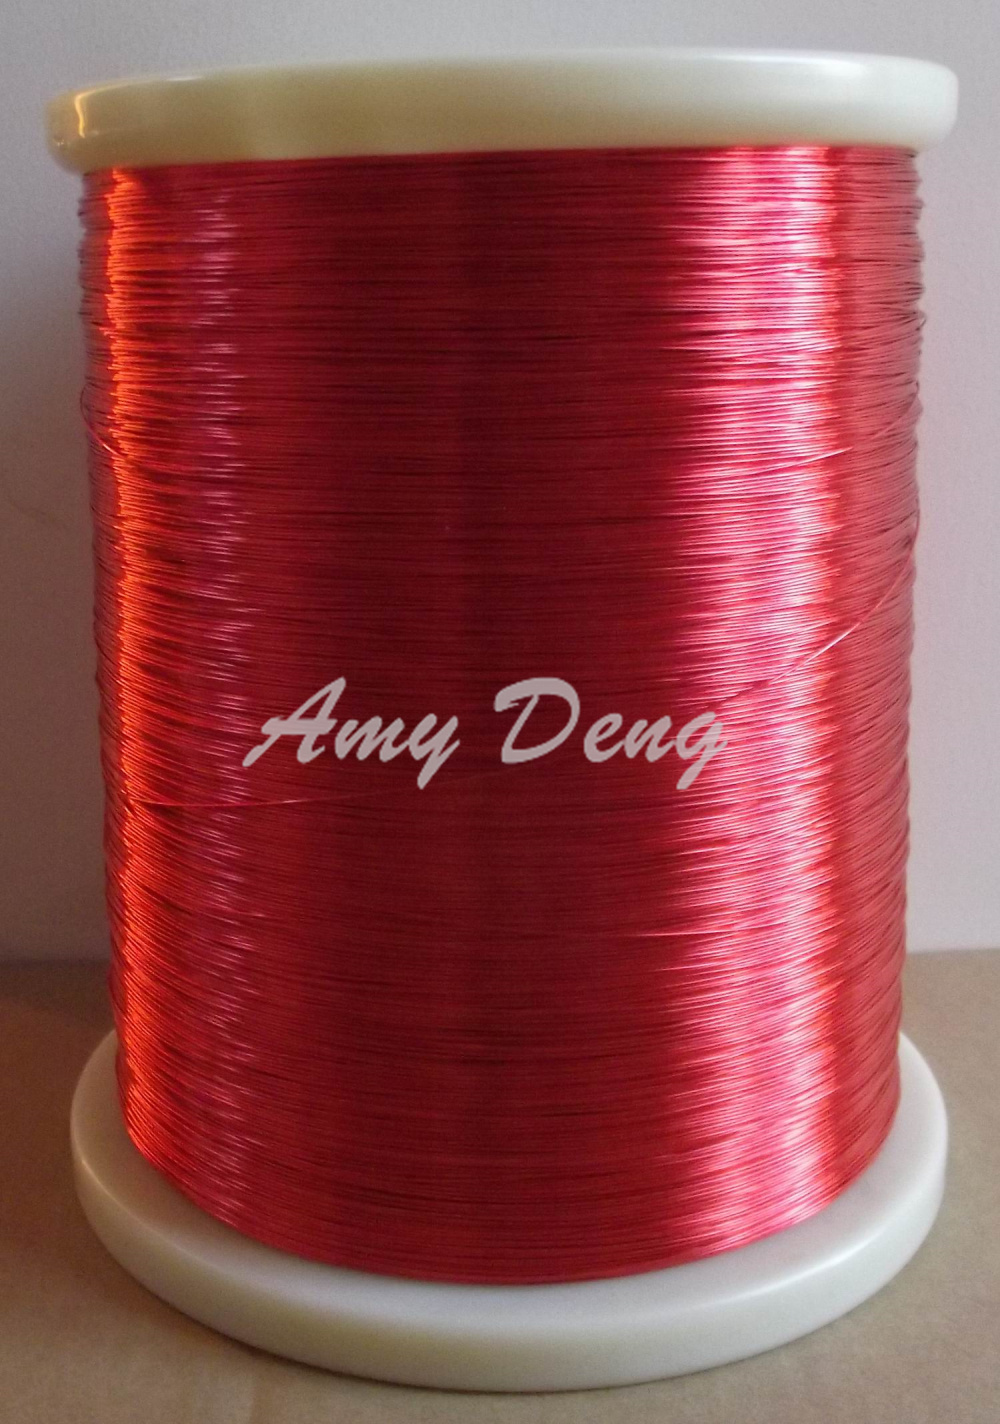 1000 Meters/lot  0.21 Mm Red New Polyurethane Enamel Covered Wire QA-1-155 Copper Wire 0.21mm